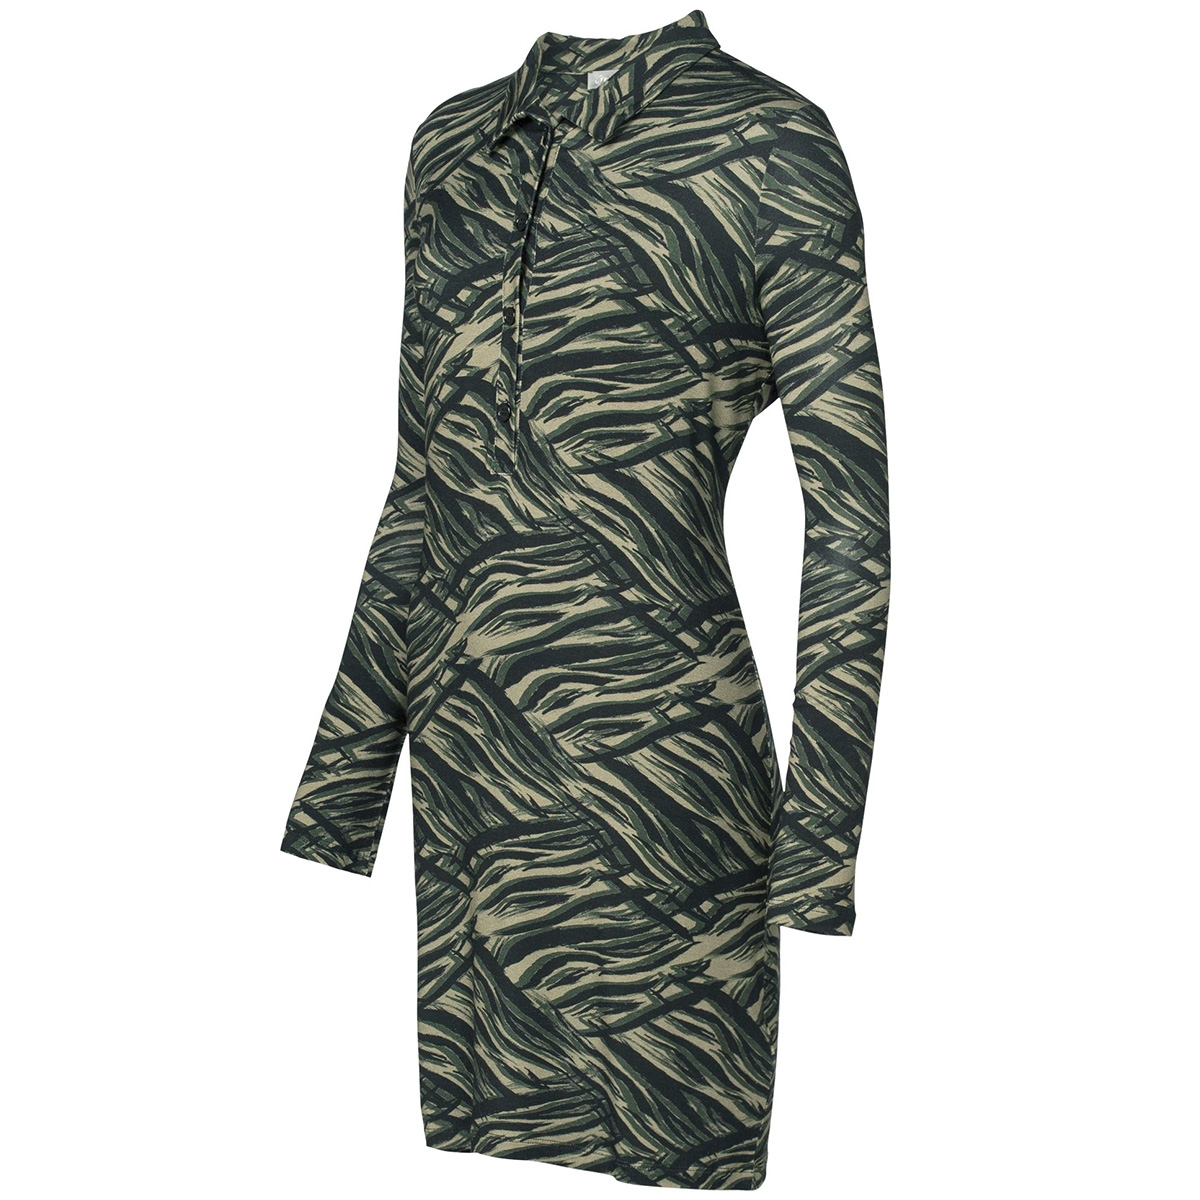 dress aop zebra 97871 geisha jurk army comb